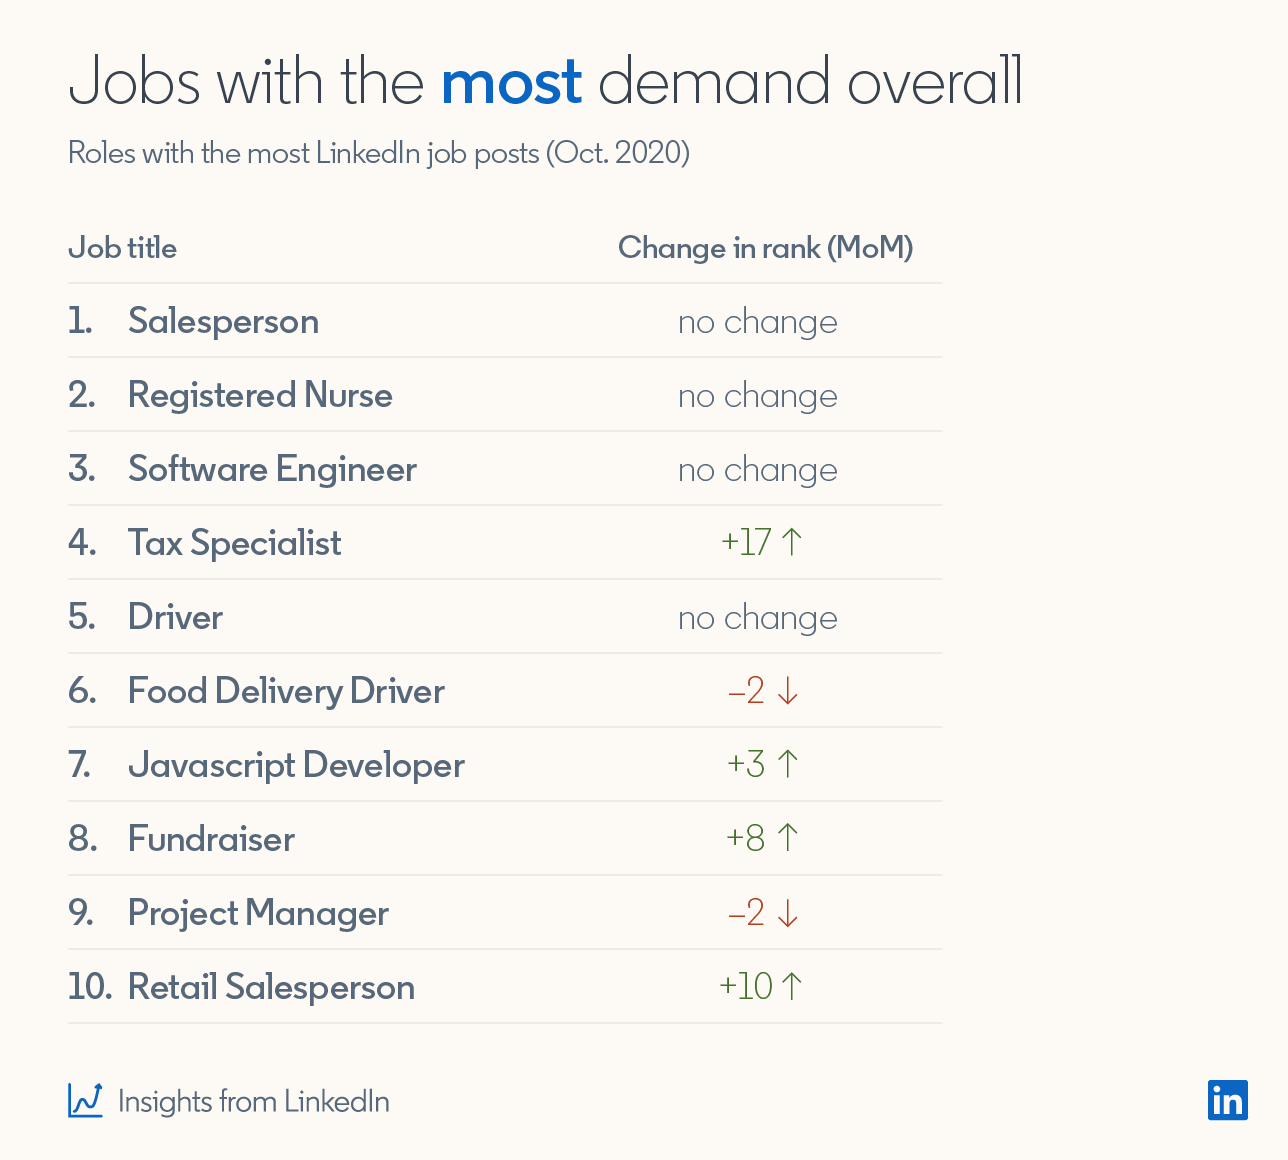 Jobs with the most demand overall Roles with the most LinkedIn job posts (Oct 2020) 1. Salesperson — No change in rank month over month 2. Registered Nurse — No change in rank month over month 3. Software Engineer — No change in rank month over month 4. Tax Specialist — +17% change in rank month over month 5. Driver — No change in rank month over month 6. Food Delivery Driver — -2% change in rank month over month 7. Javascript Developer — +3% change in rank month over month 8. Fundraiser — +8% change in rank month over month 9. Project Manager — -2% change in rank month over month 10. Retail Salesperson — +10% change in rank month over month (Insights from LinkedIn)